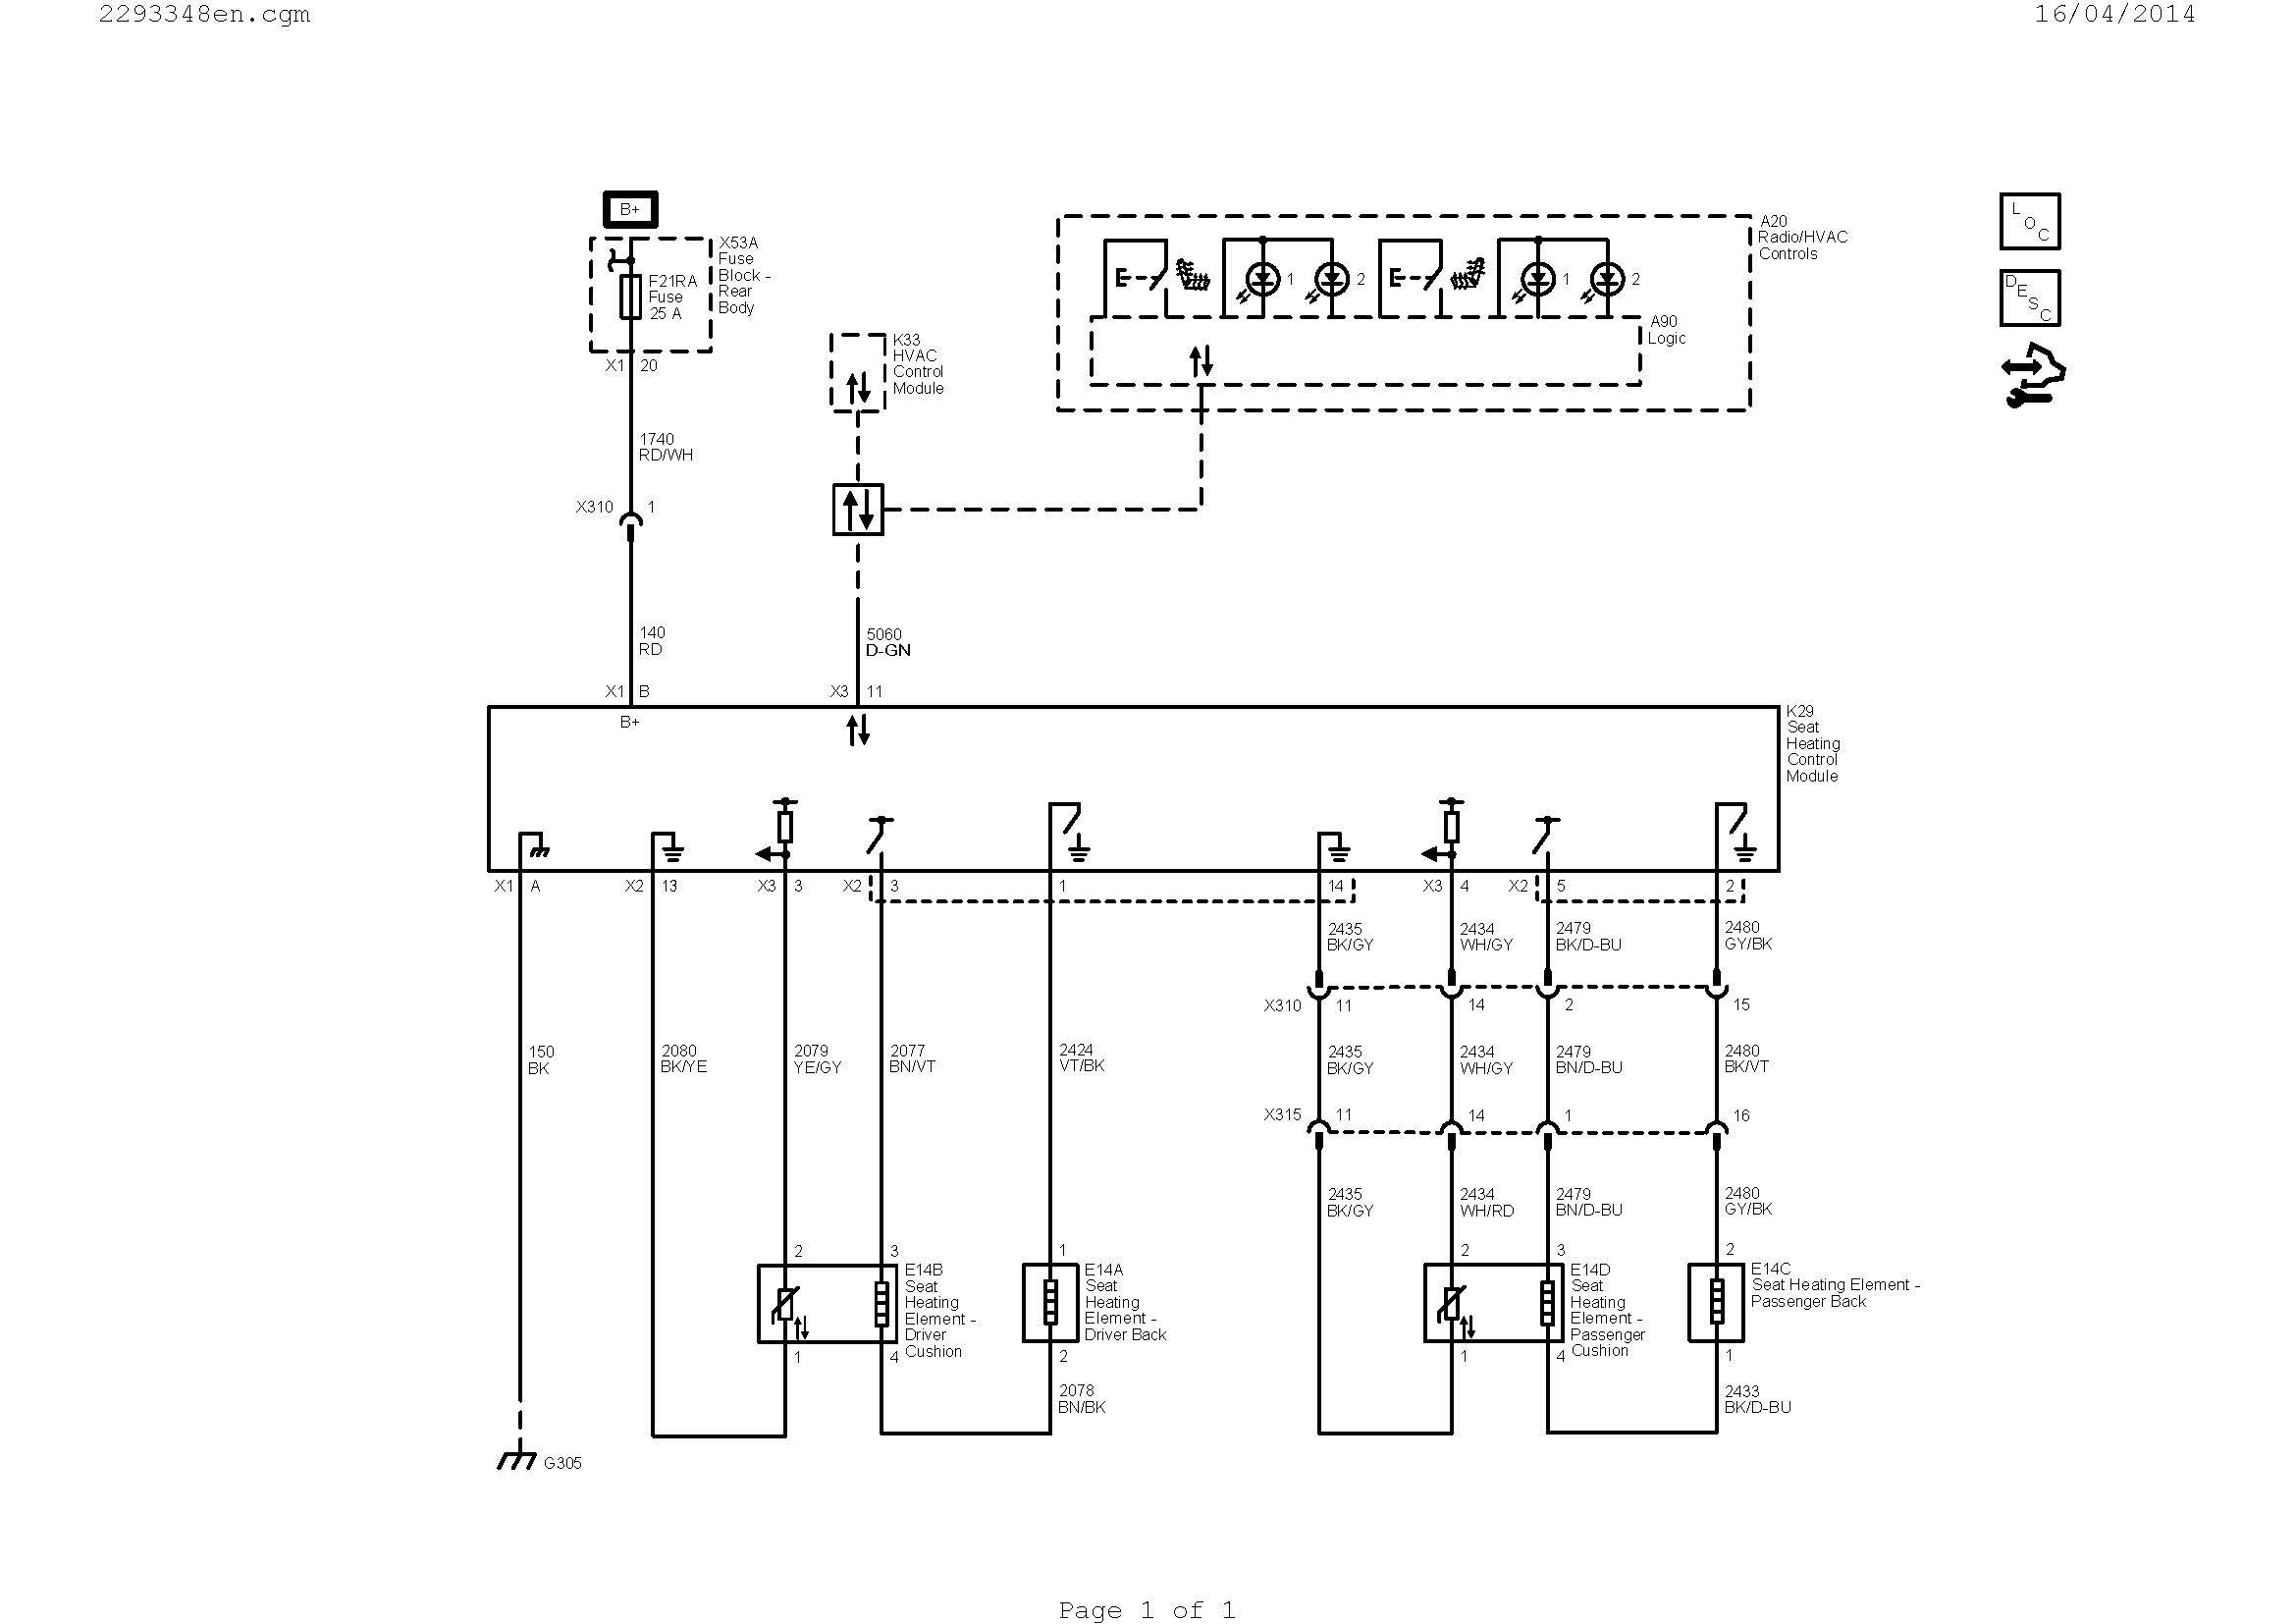 24vdc relay wiring diagram Collection-hvac relay wiring diagram Collection Wiring Diagram For Changeover Relay Inspirationa Wiring Diagram Ac Valid DOWNLOAD Wiring Diagram 2-s